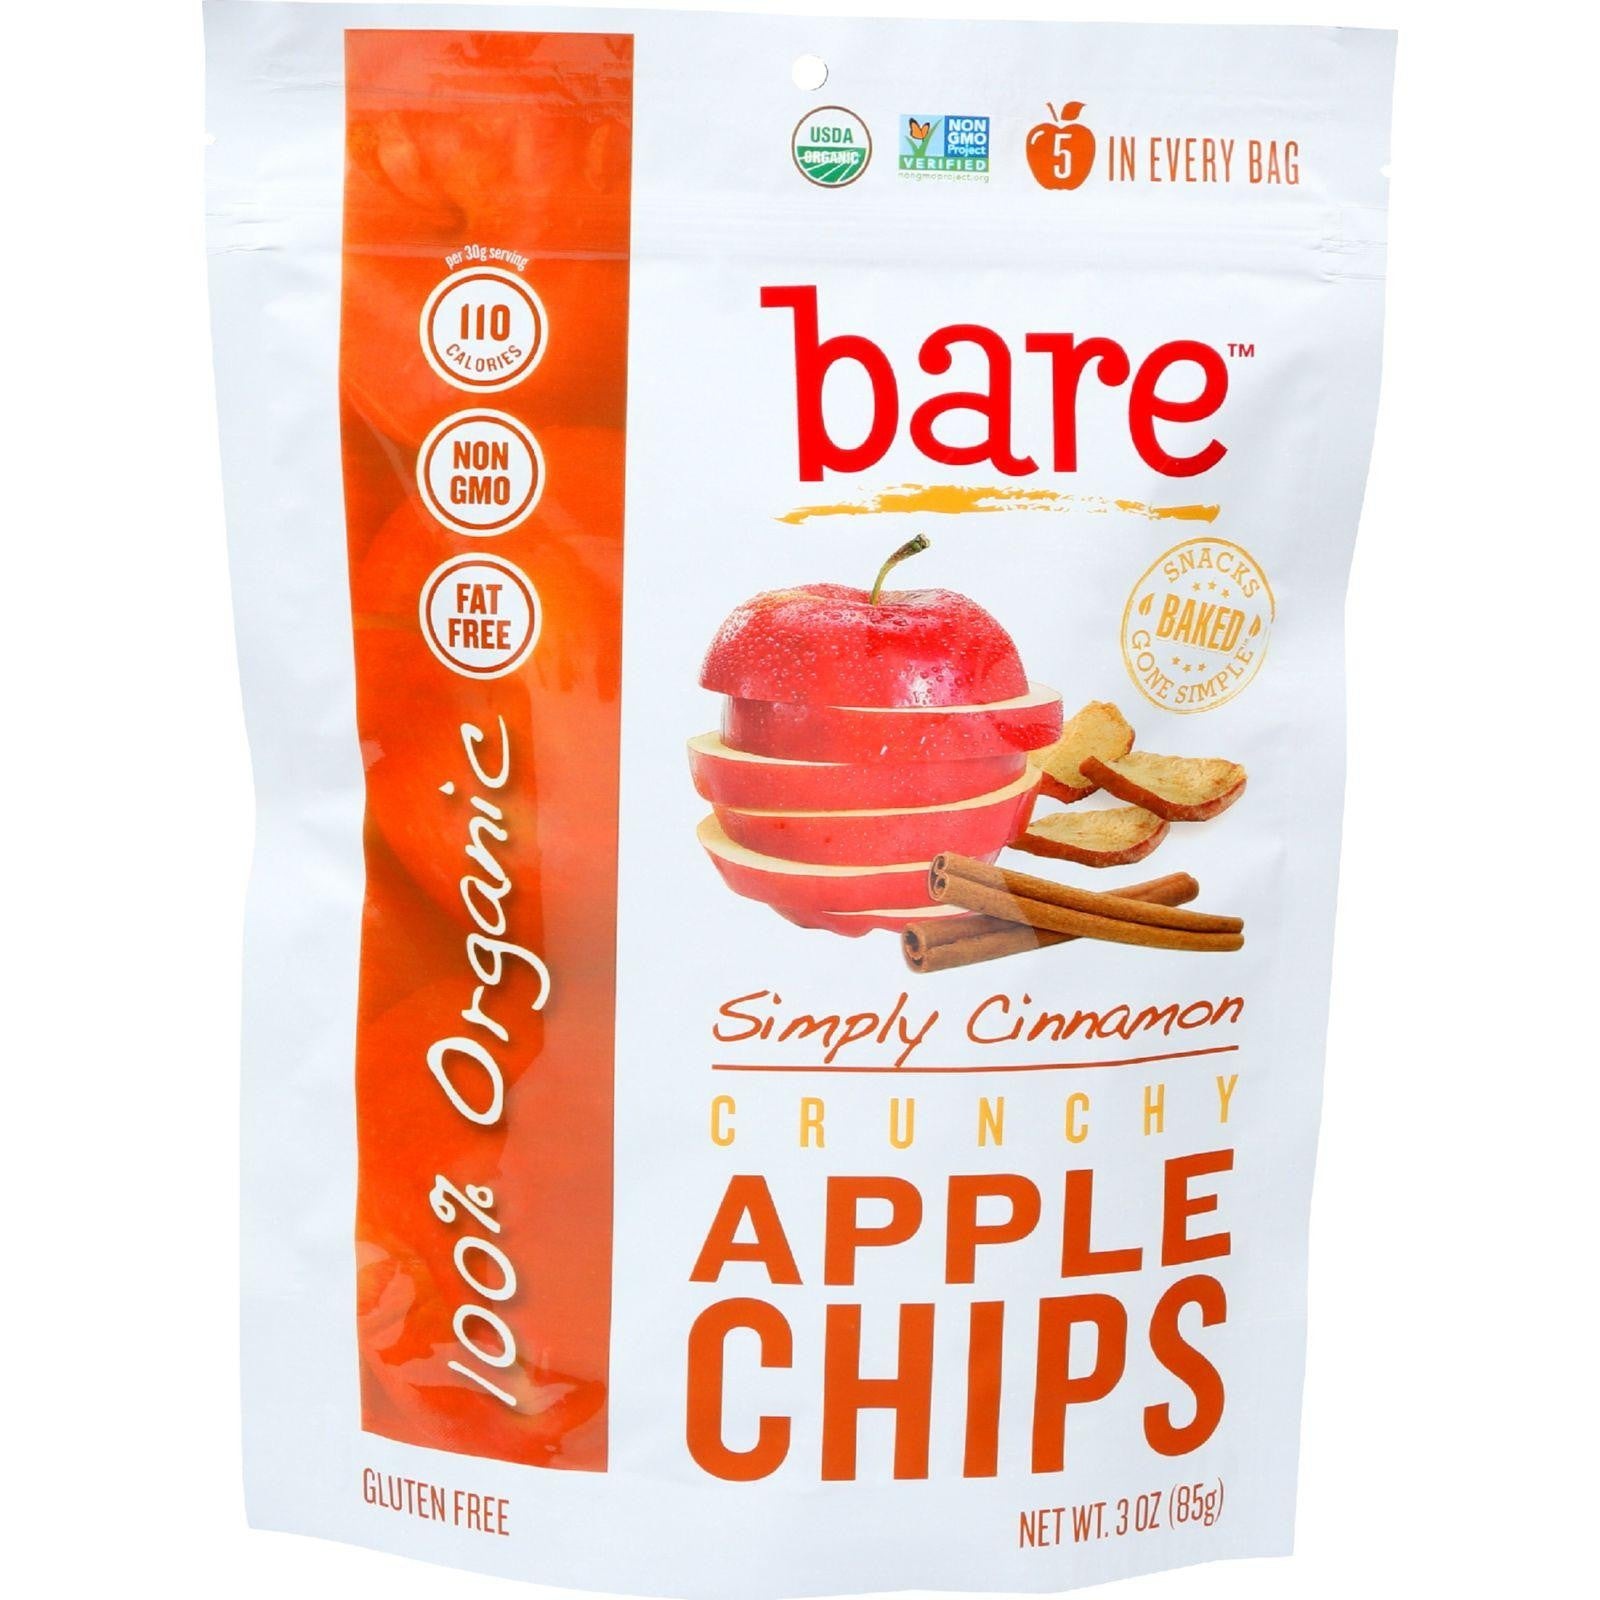 Bare Fruit All Natural Crunchy Apple Chips Simply Cinnamon